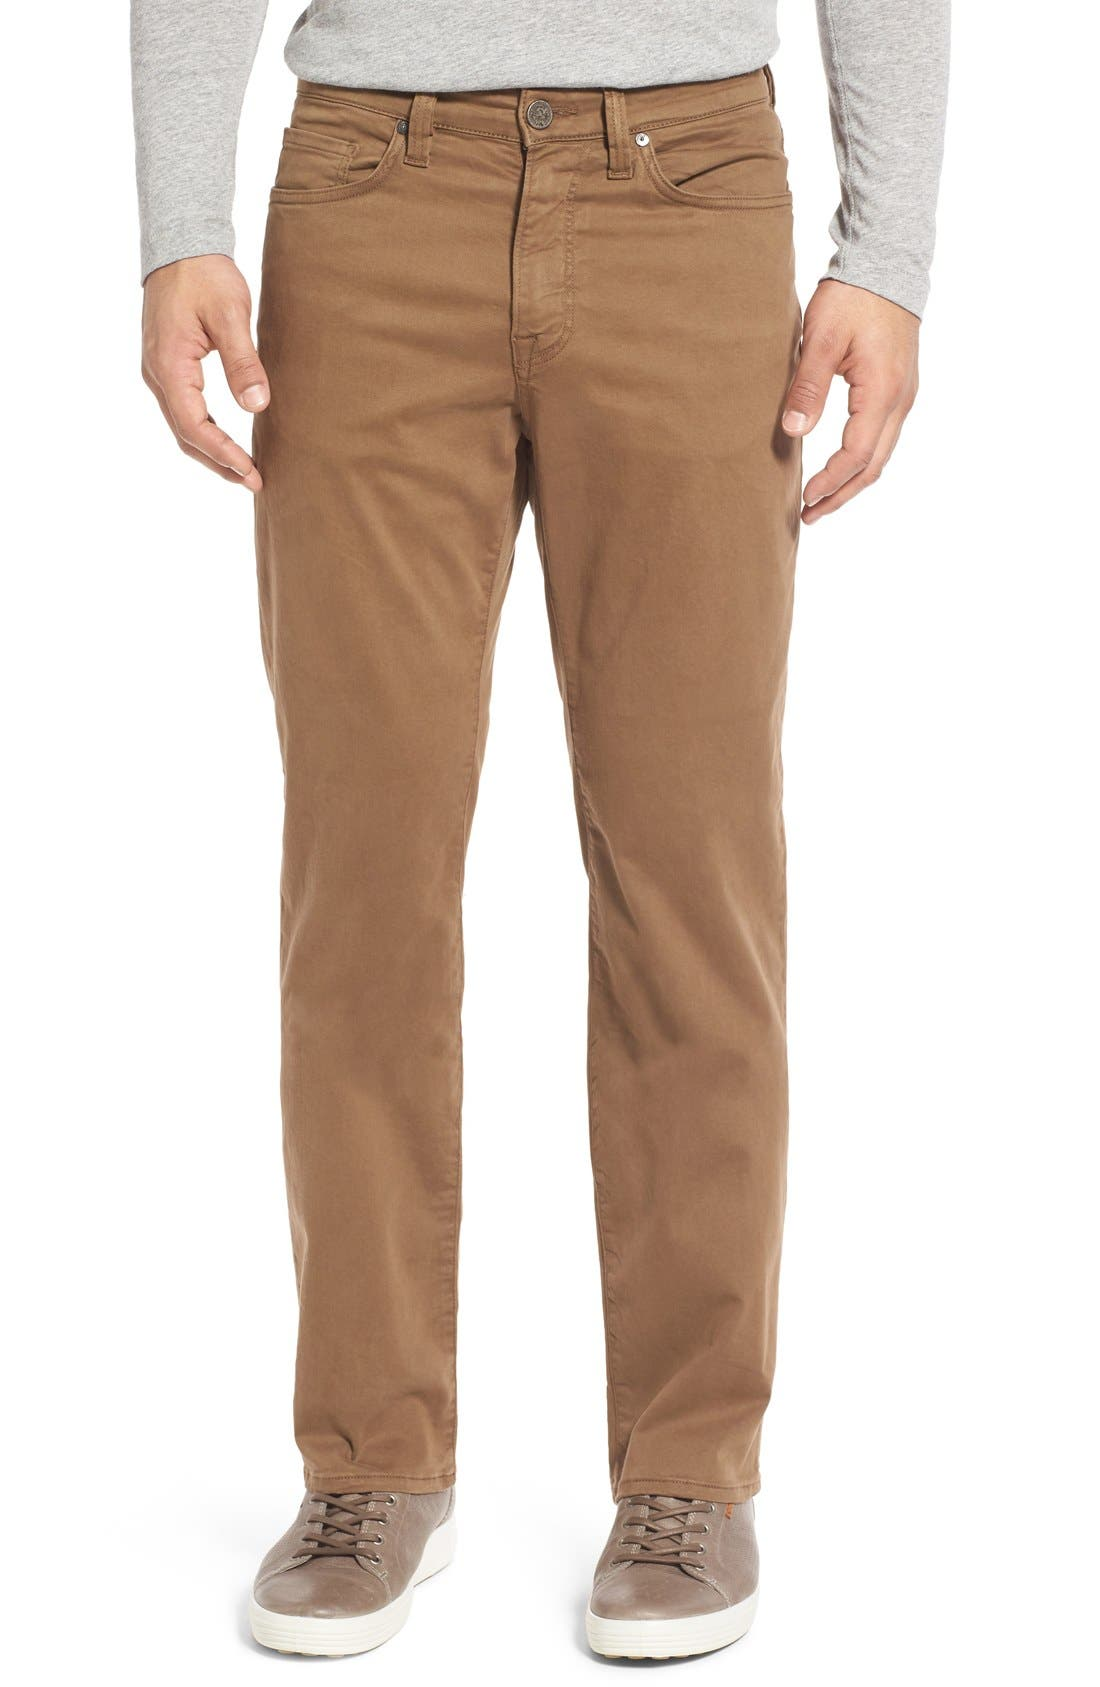 34 Heritage 'Charisma' Relaxed Fit Jeans (Tobacco Twill) (Online Only)